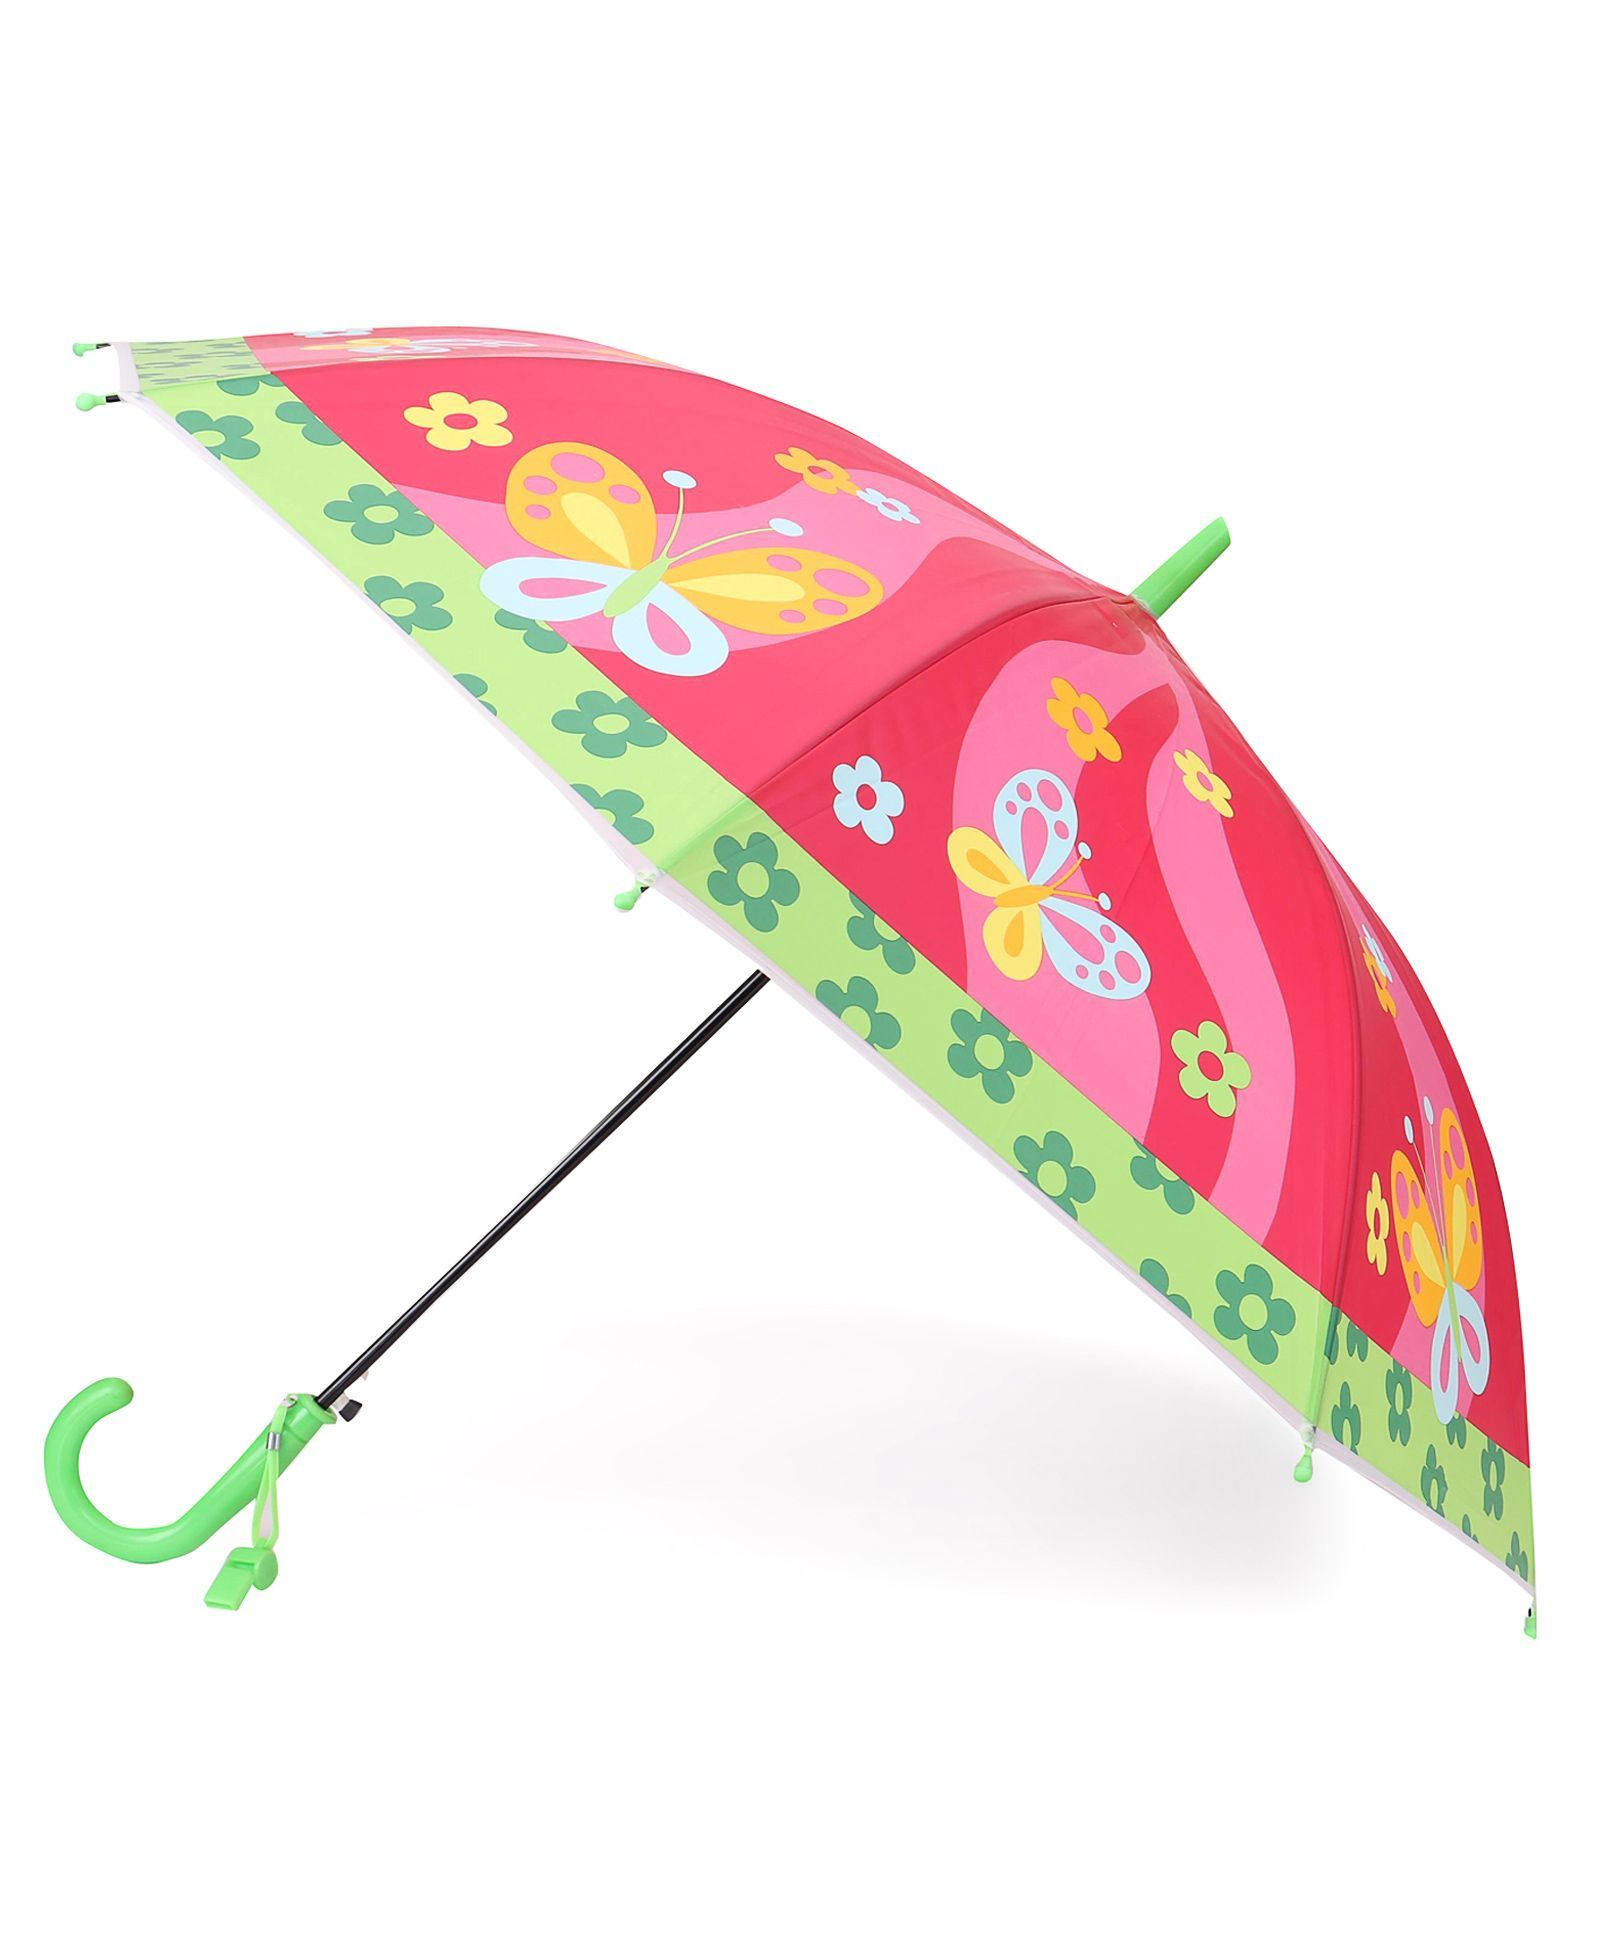 2c89071b1 Babyhug Baby Umbrella Butterfly Print Pink Online in India, Buy at Best  Price from Firstcry.com - 1482040